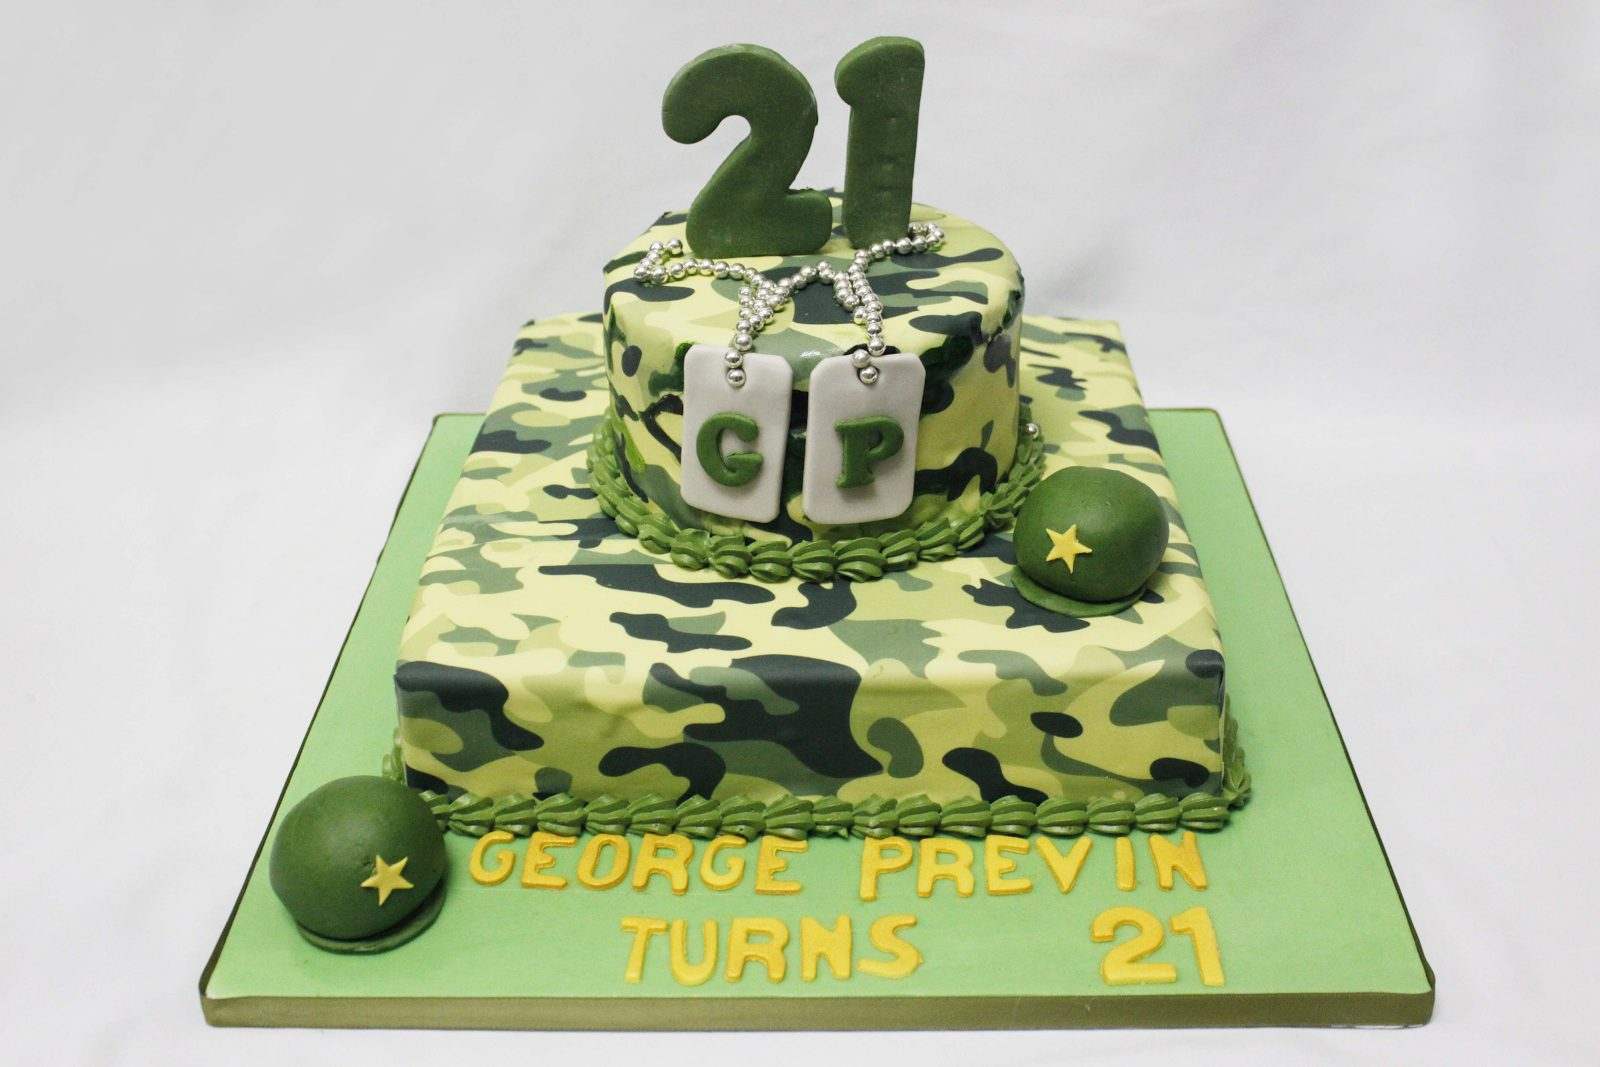 An army themed 21st birthday cake, suitable to celebrate this milestone. Made by: Temptations Cakes Singapore - Recommend.sg